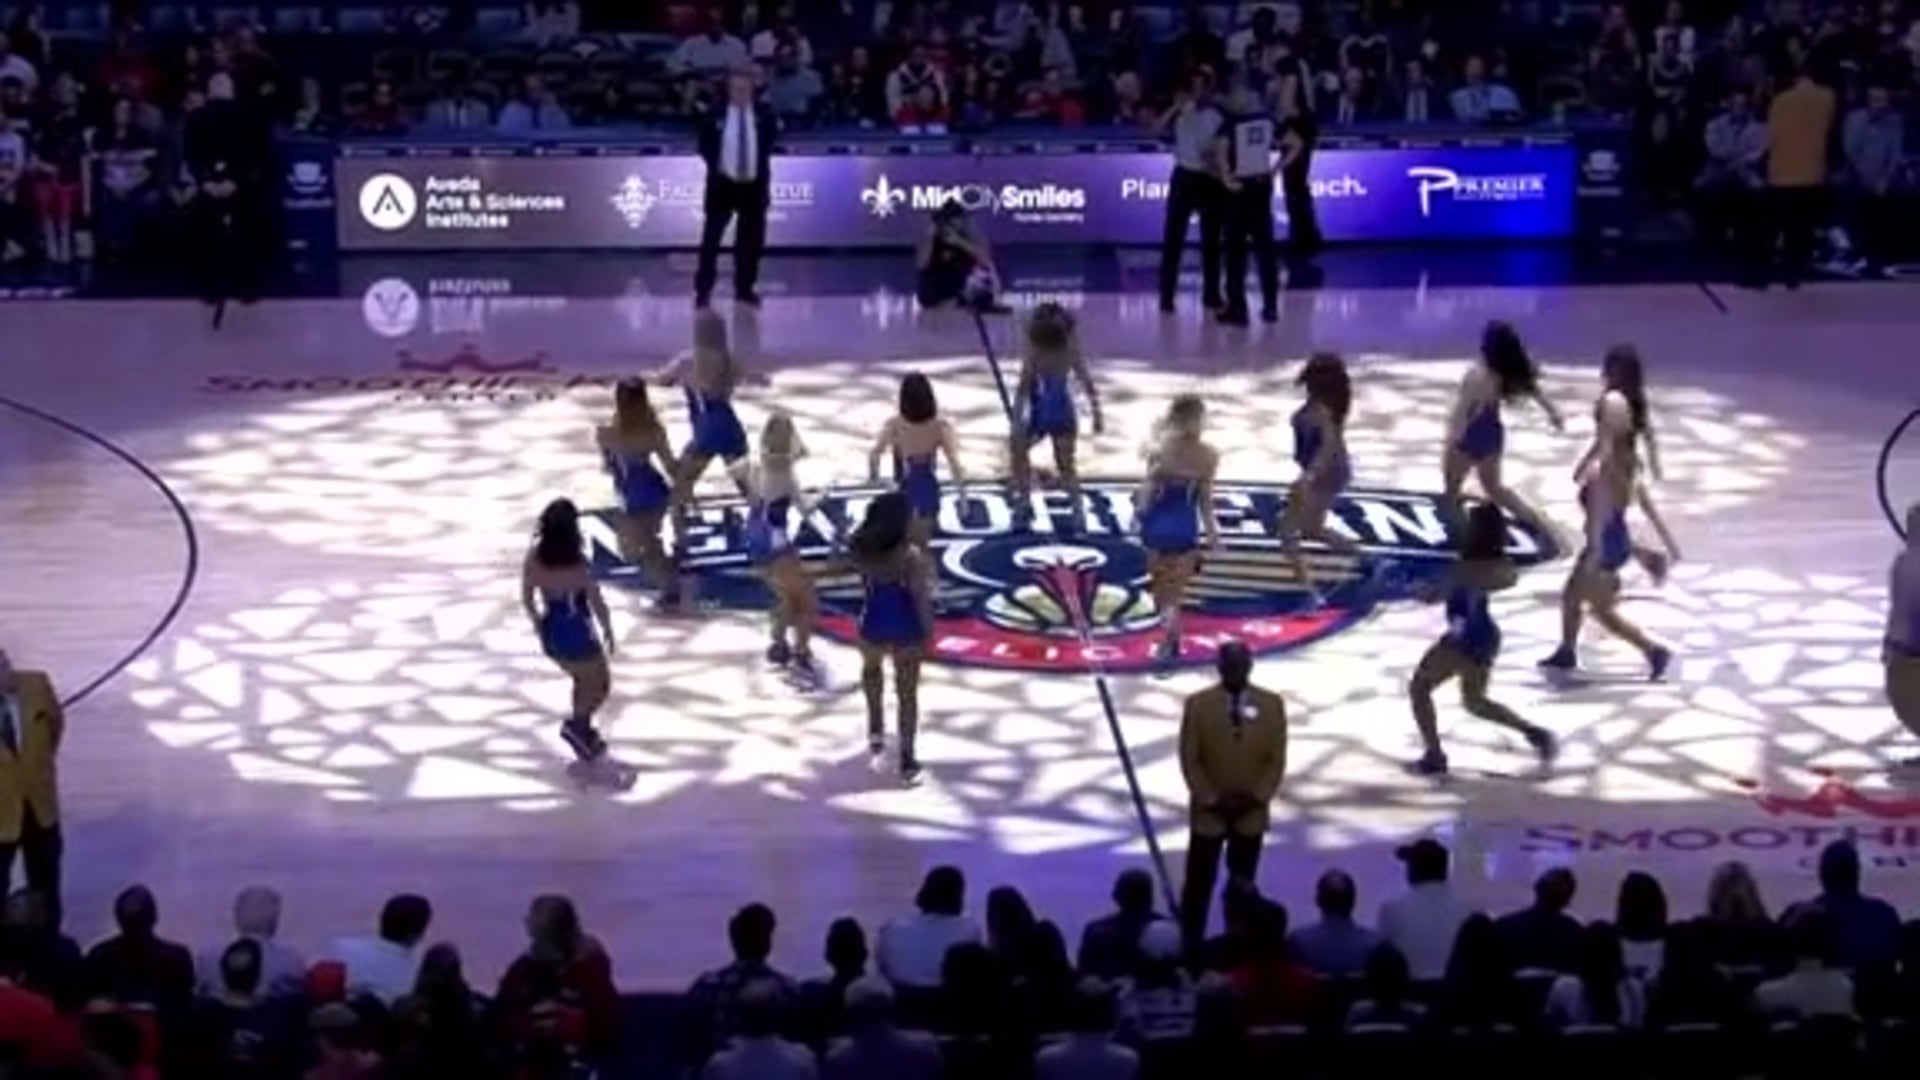 Entertainment: Pelicans Dance Team 2nd quarter performance - December 15 vs. Orlando Magic